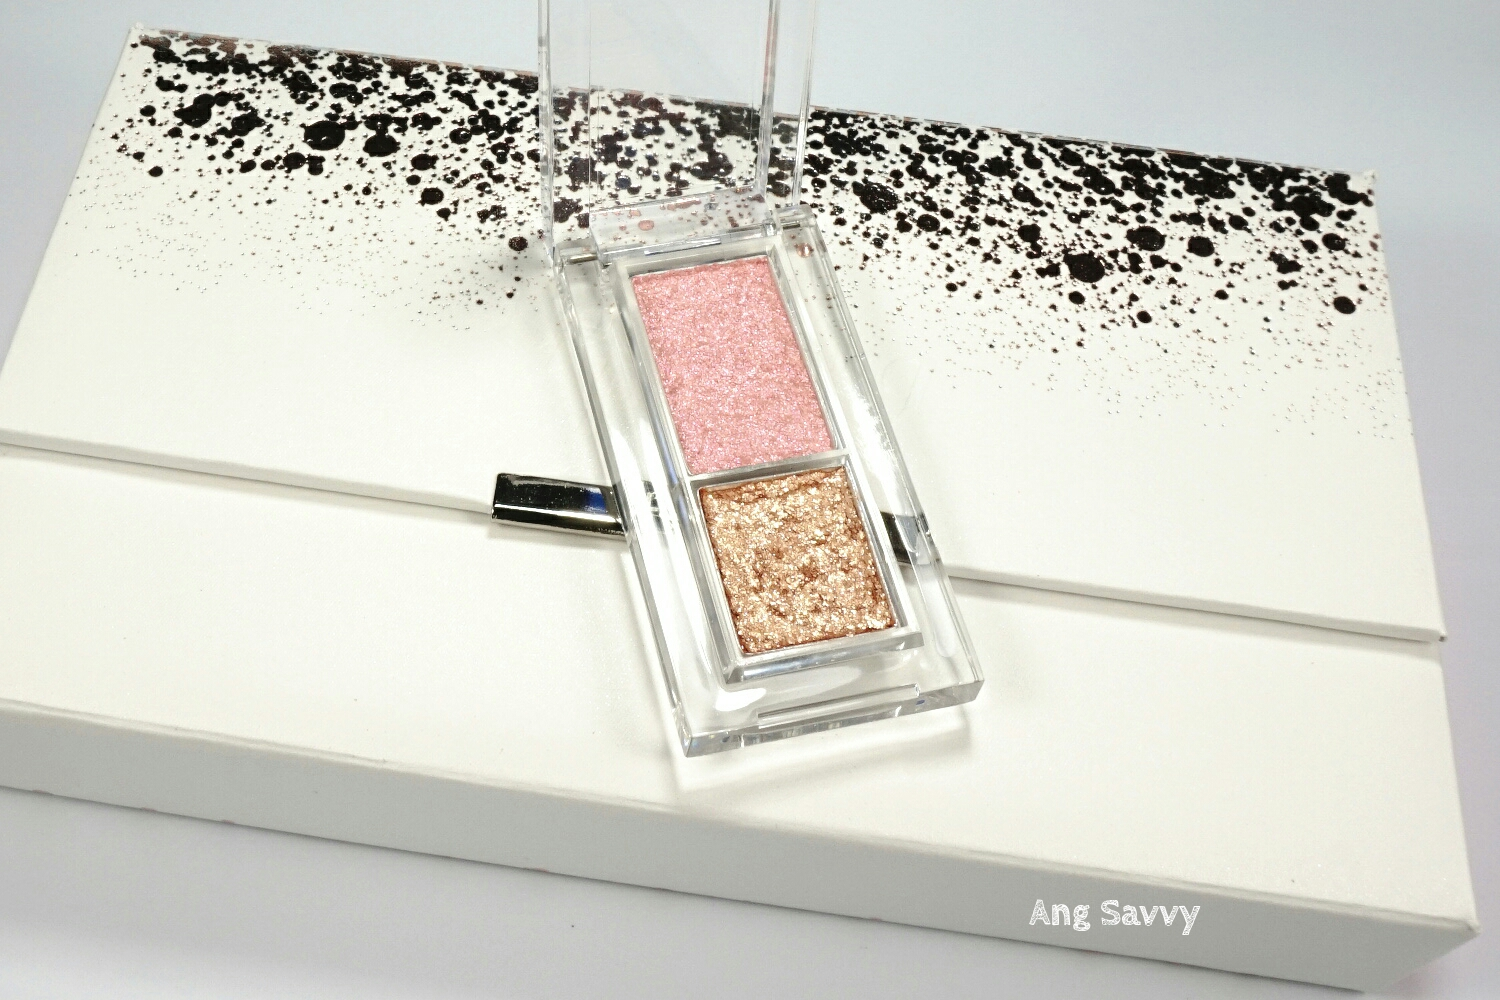 LANEIGE Sparkling Makeup Collection Palette